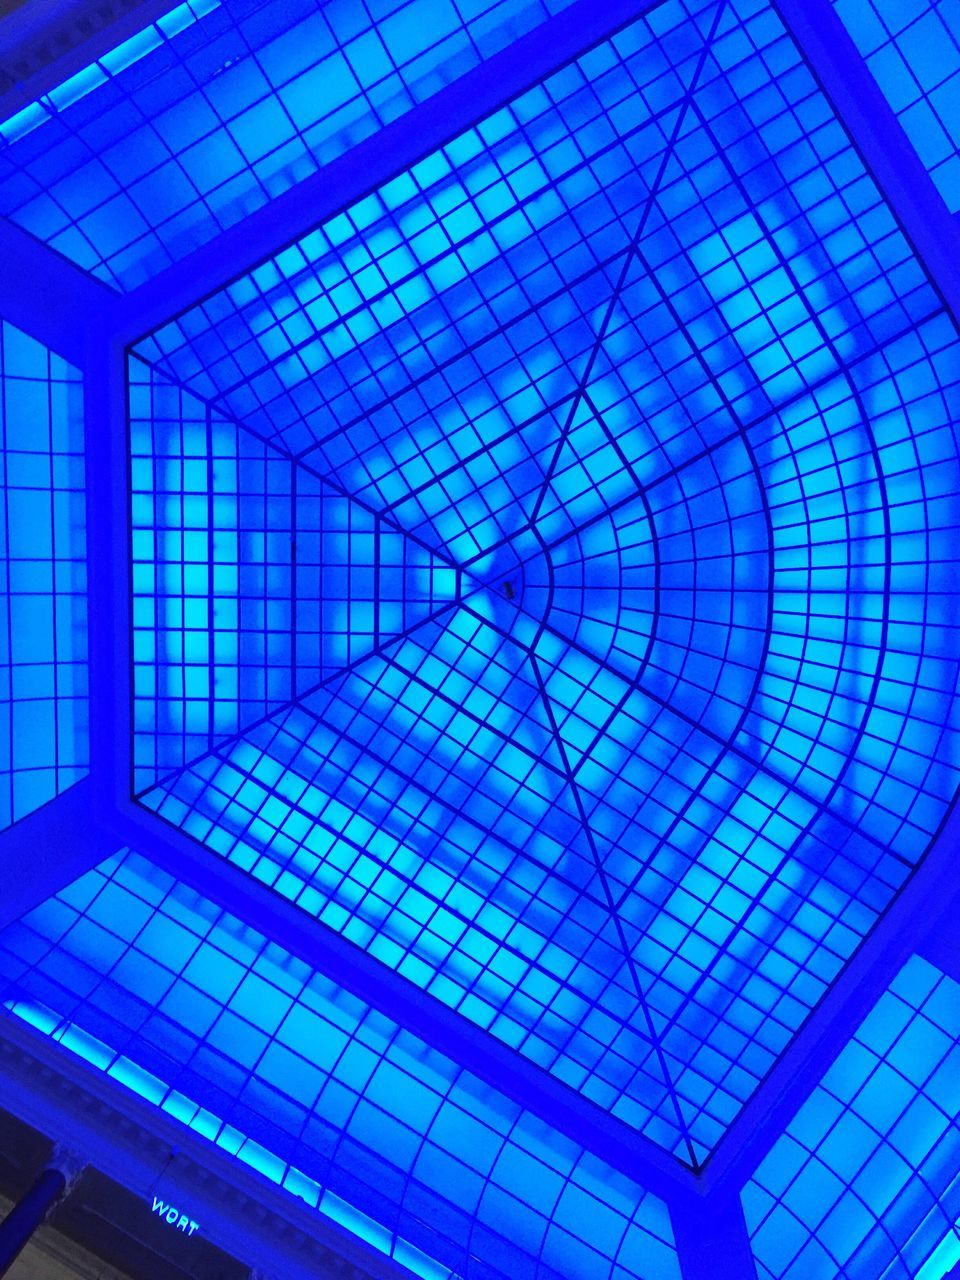 ceiling, pattern, illuminated, indoors, abstract, no people, blue, backgrounds, built structure, complexity, multi colored, architecture, modern, neon, close-up, day